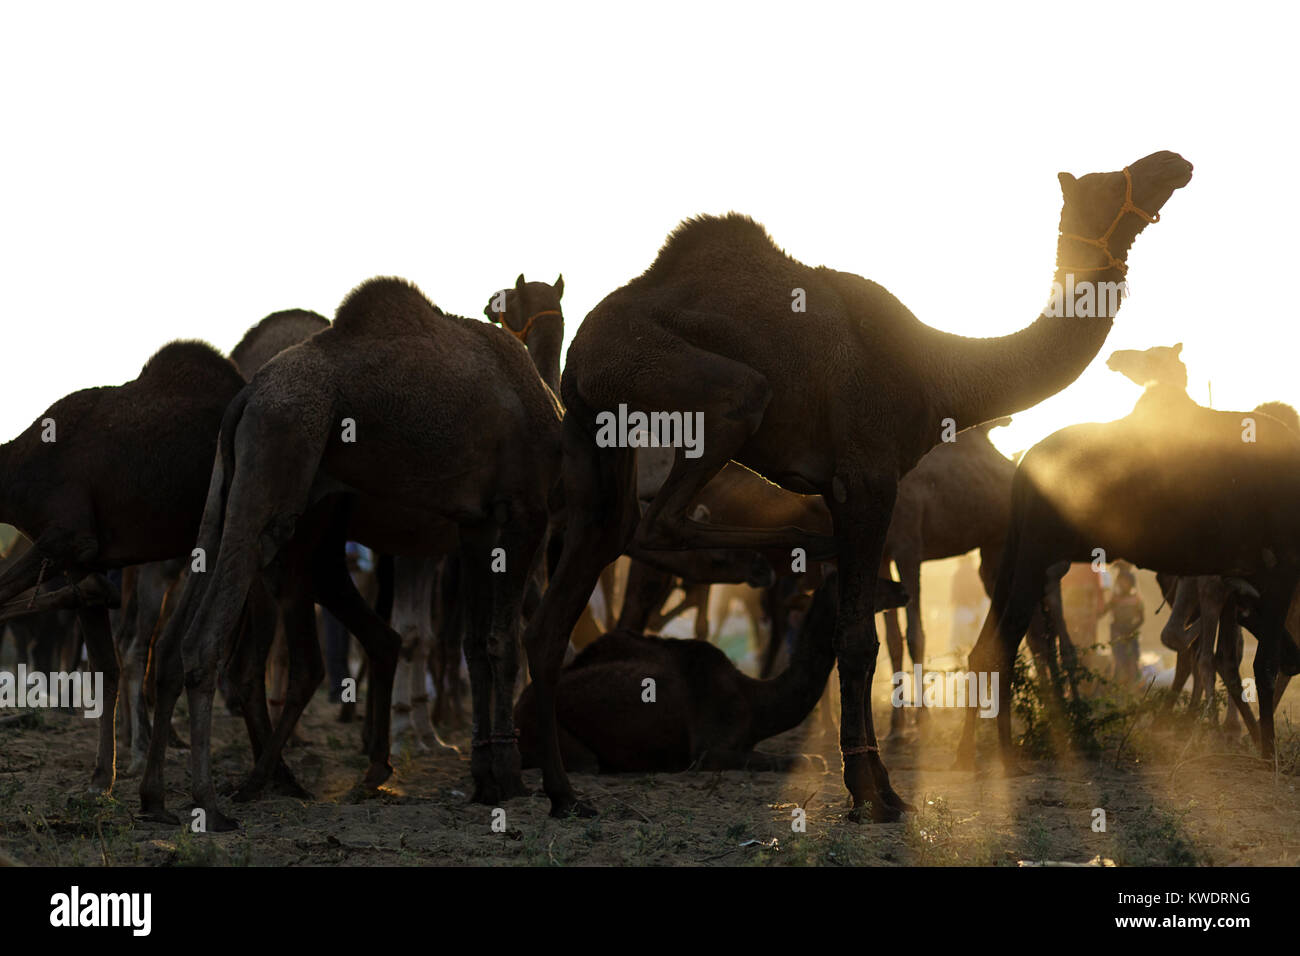 Scene at Pushkar Camel Fair, close-up of herd of camels with sun rays behind them, Pushkar, Rajasthan, India - Stock Image